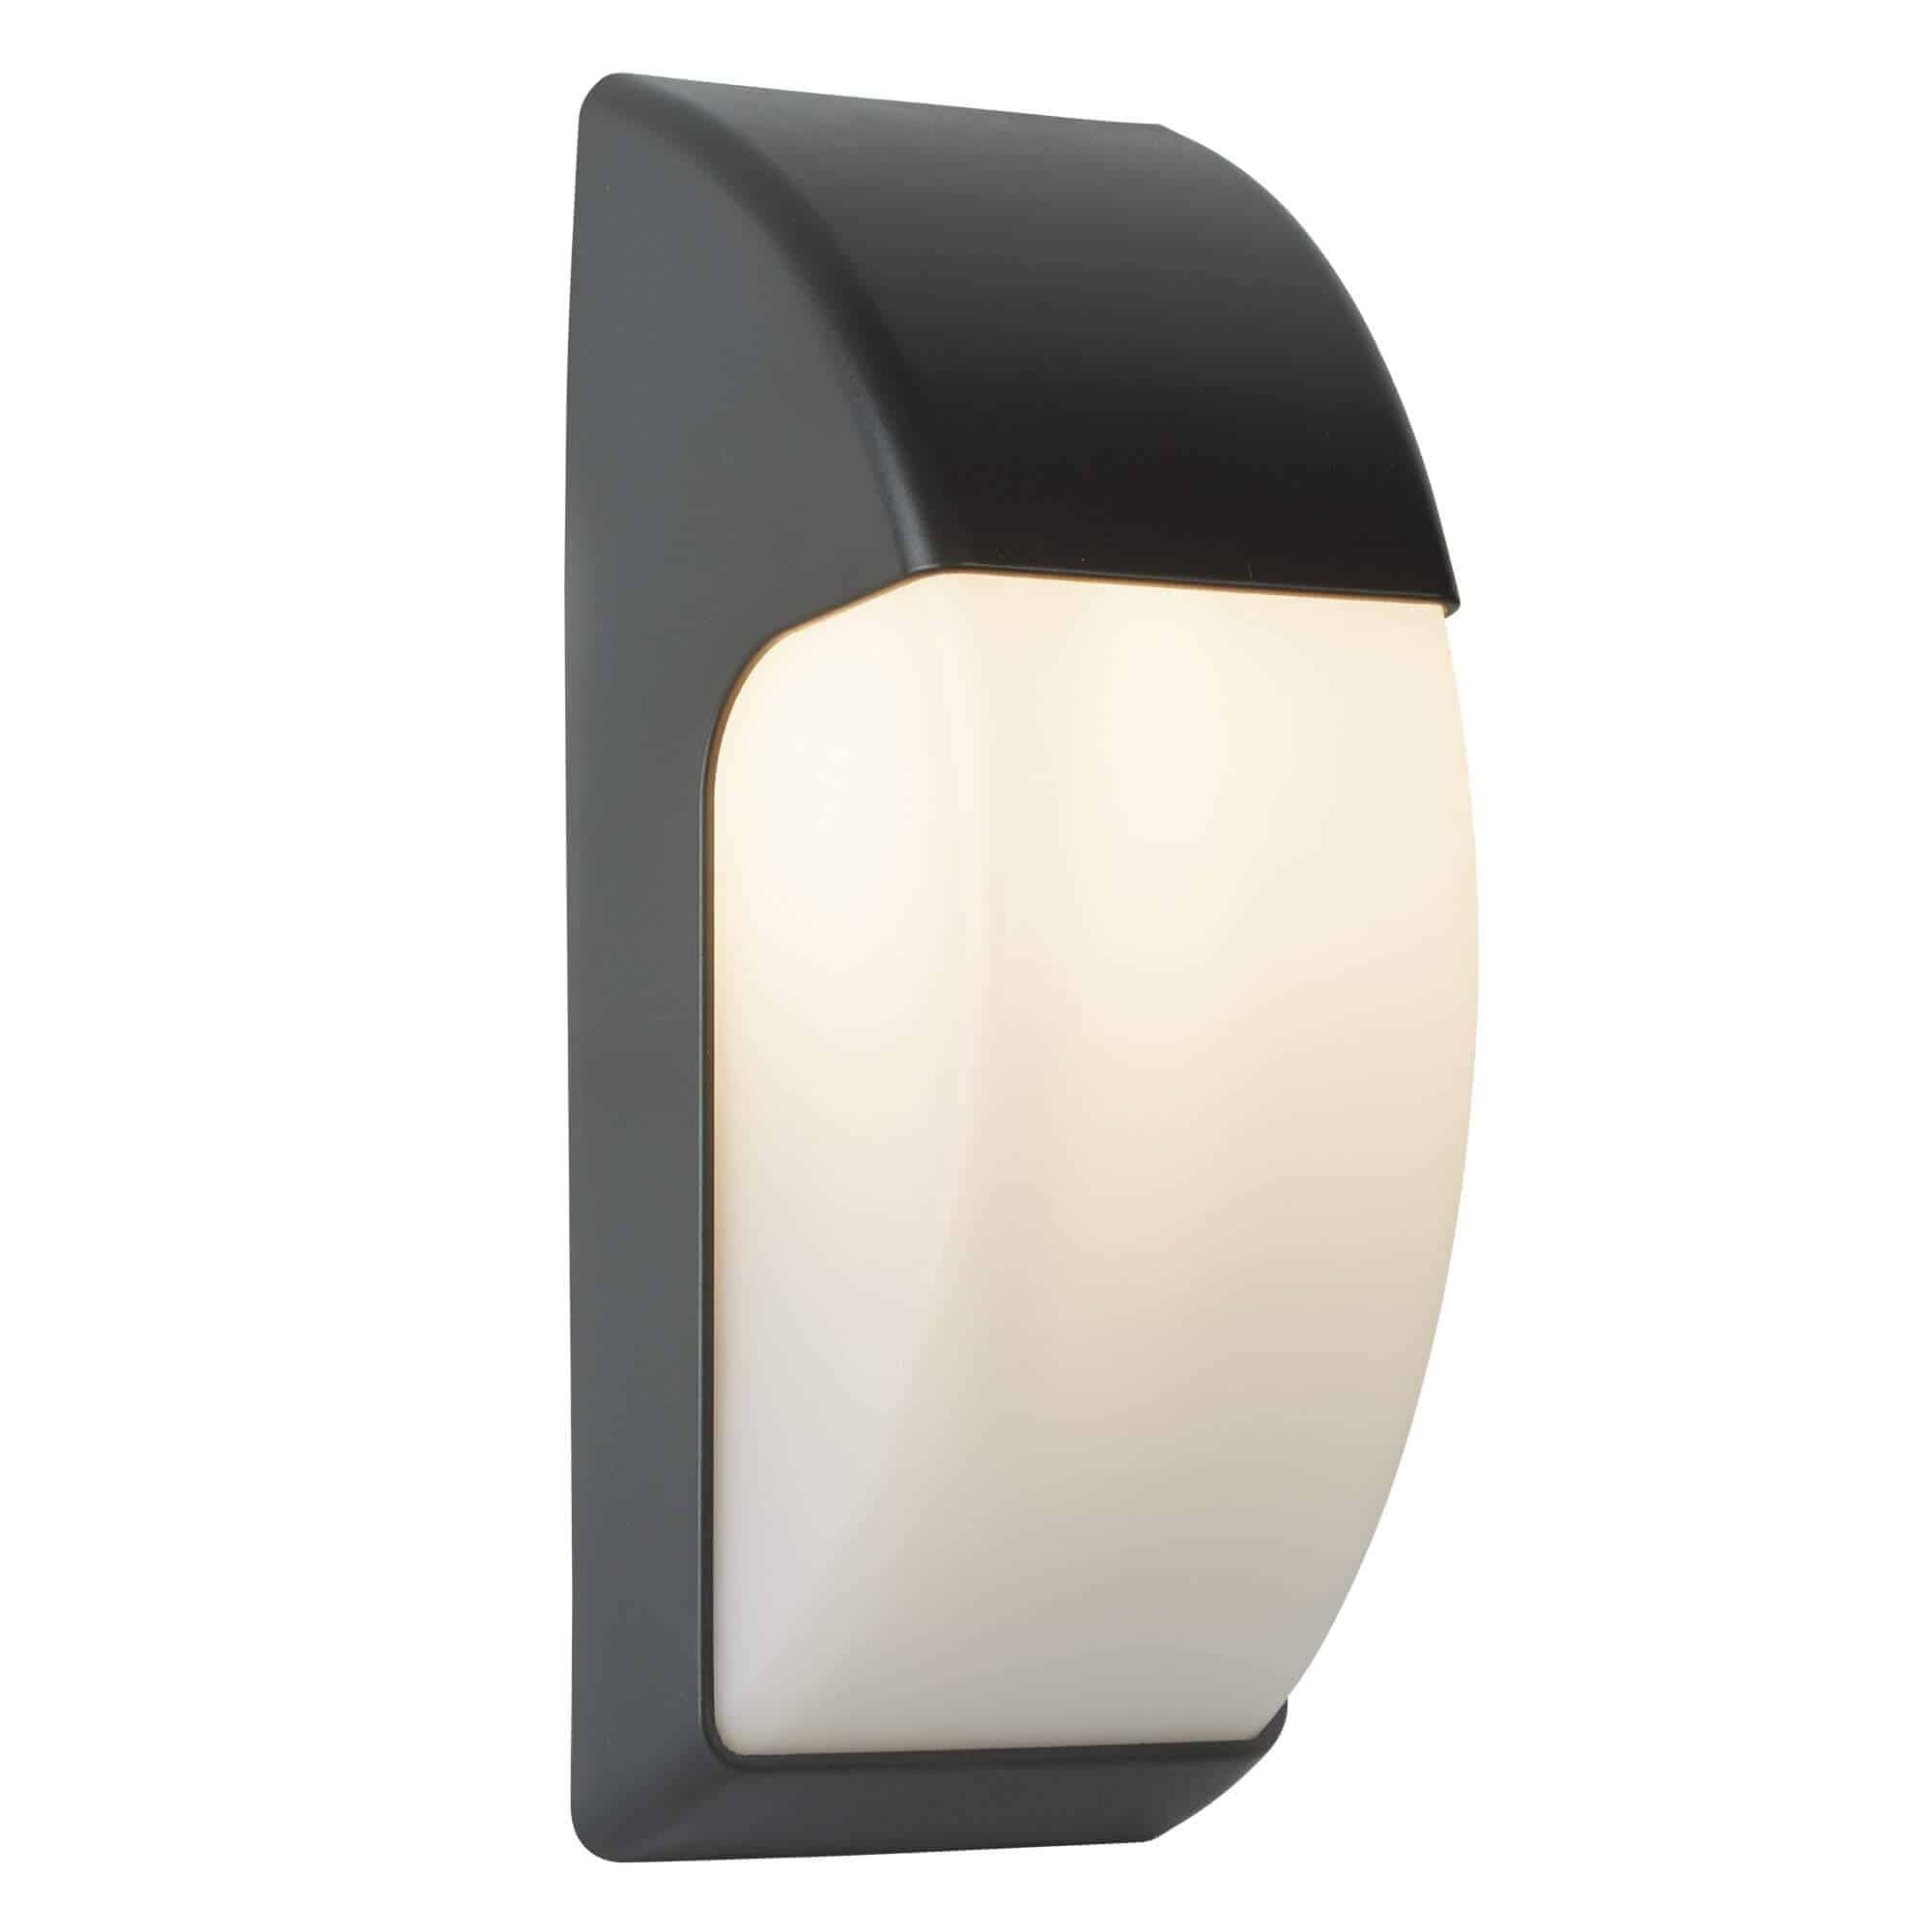 3231GY – Searchlight LED Outdoor Dark Grey Crescent Wall Light